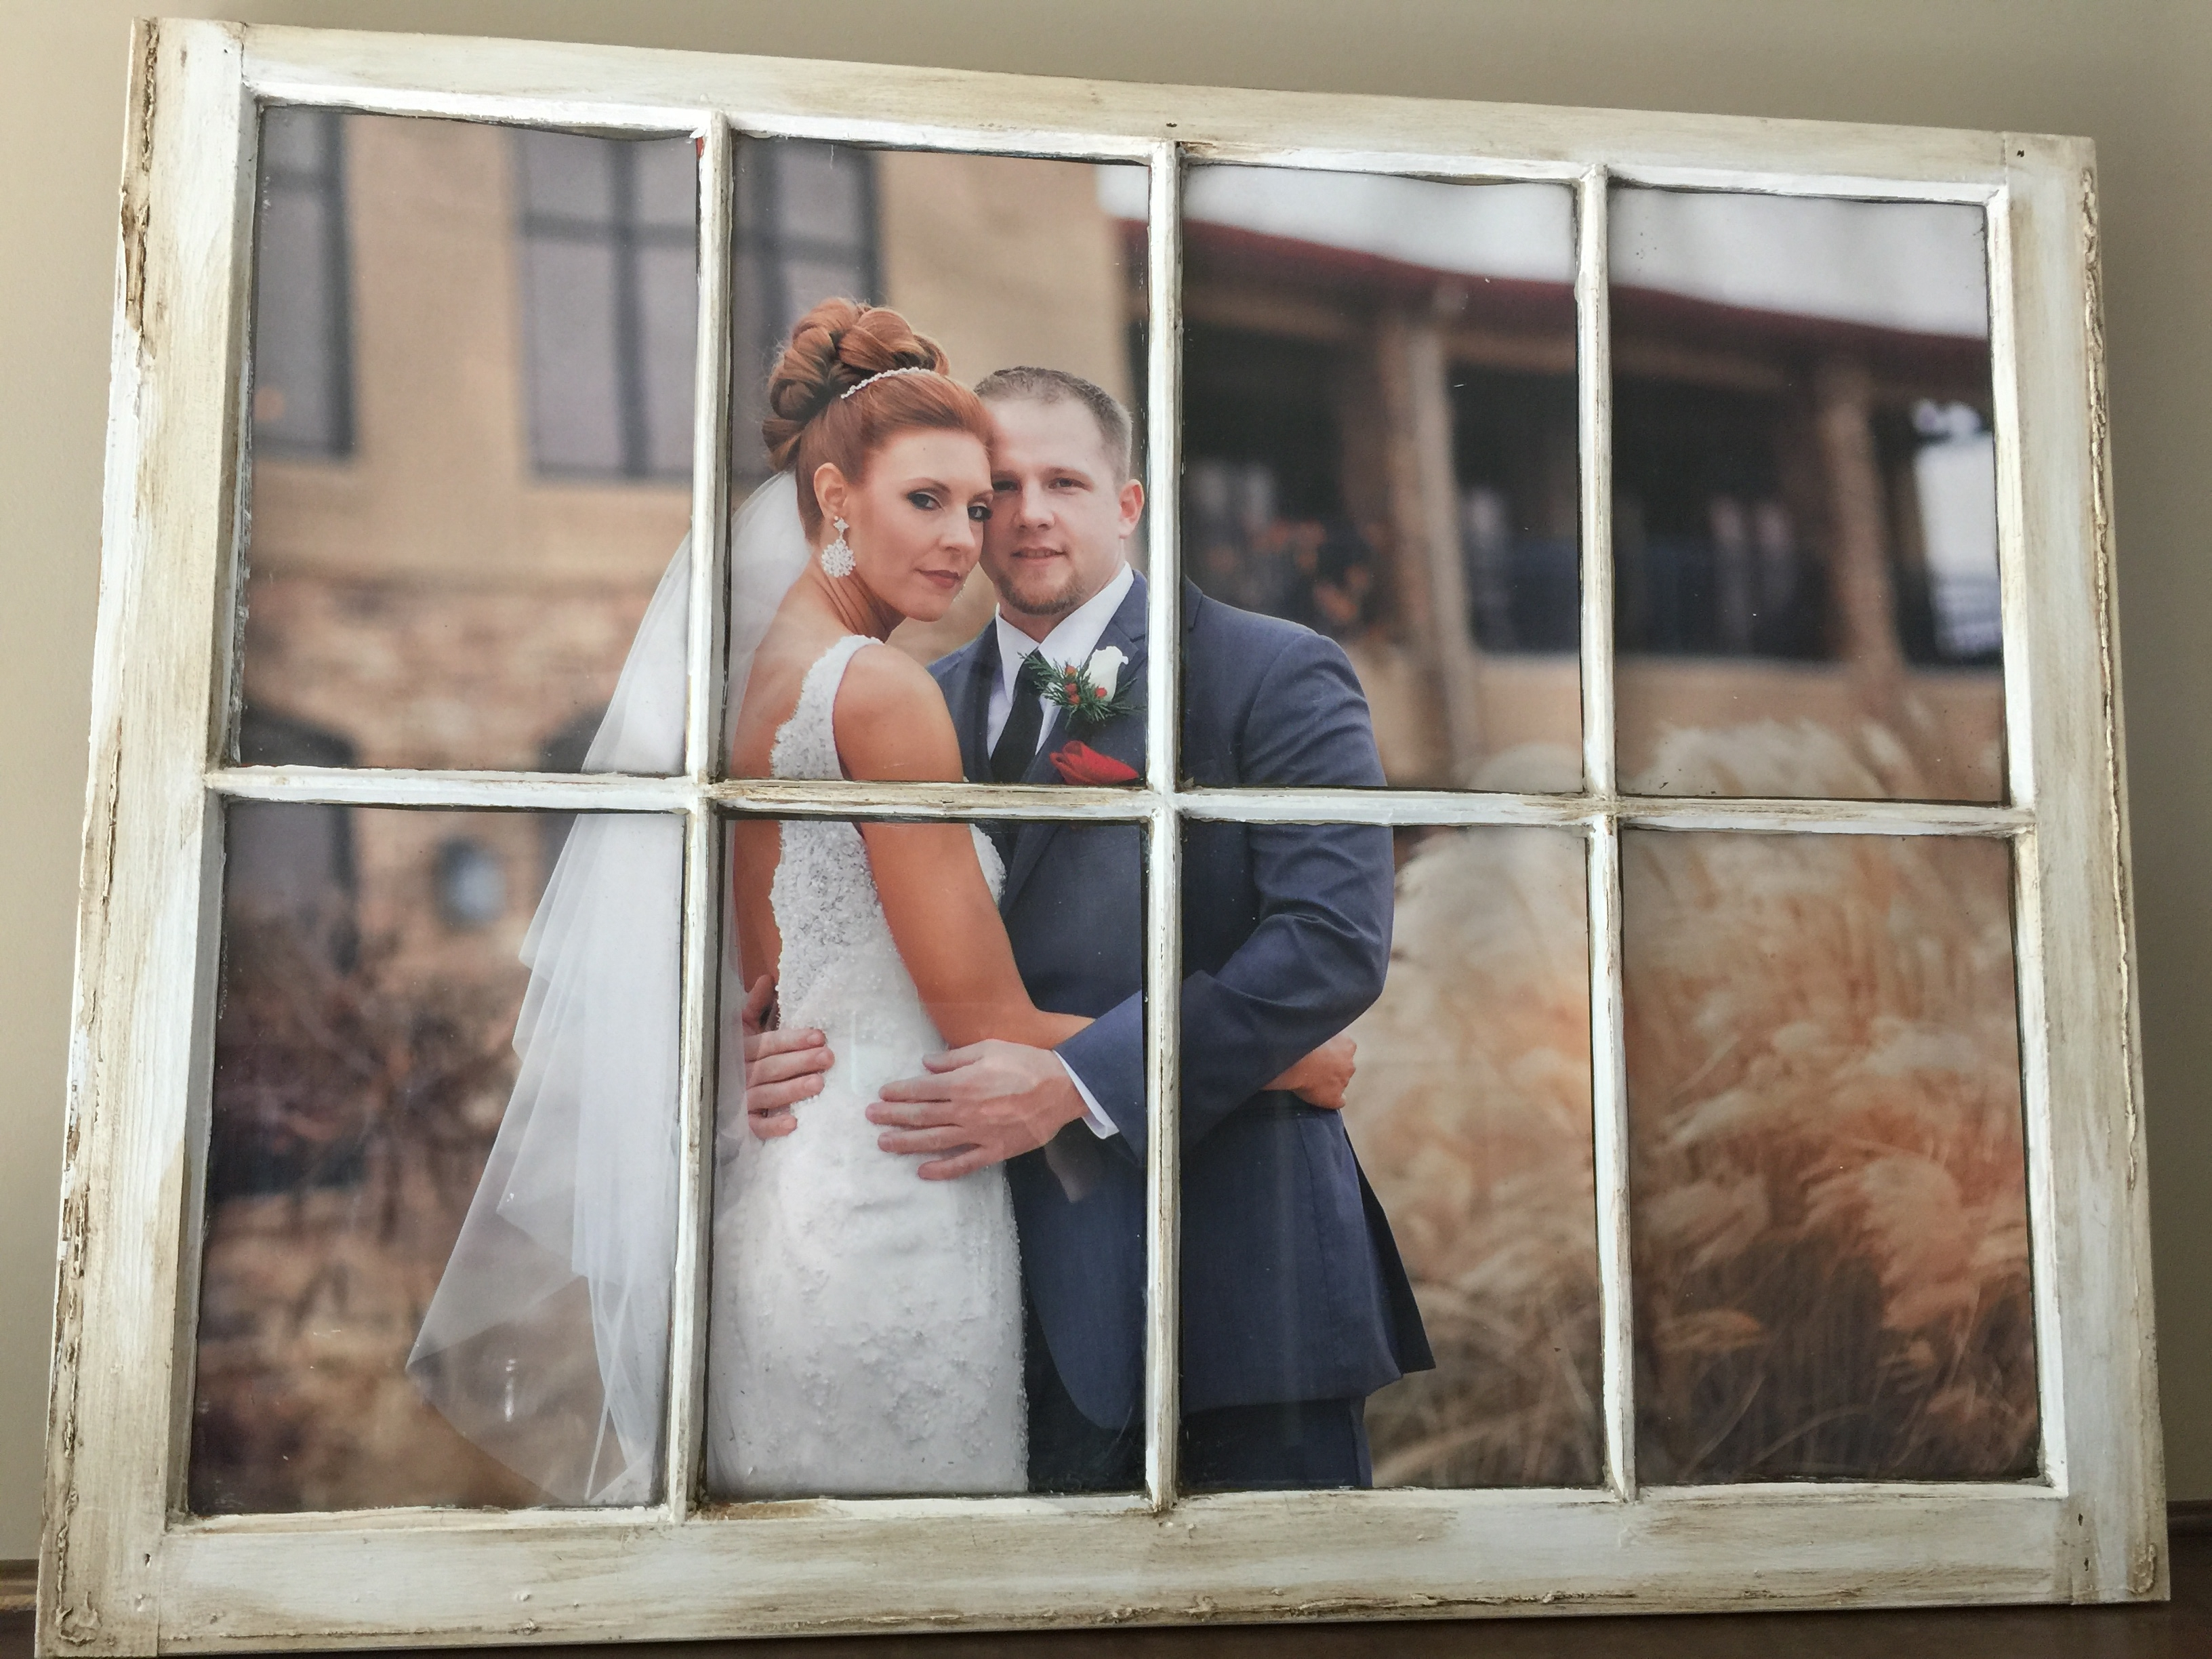 DIY Picture Window using an old window